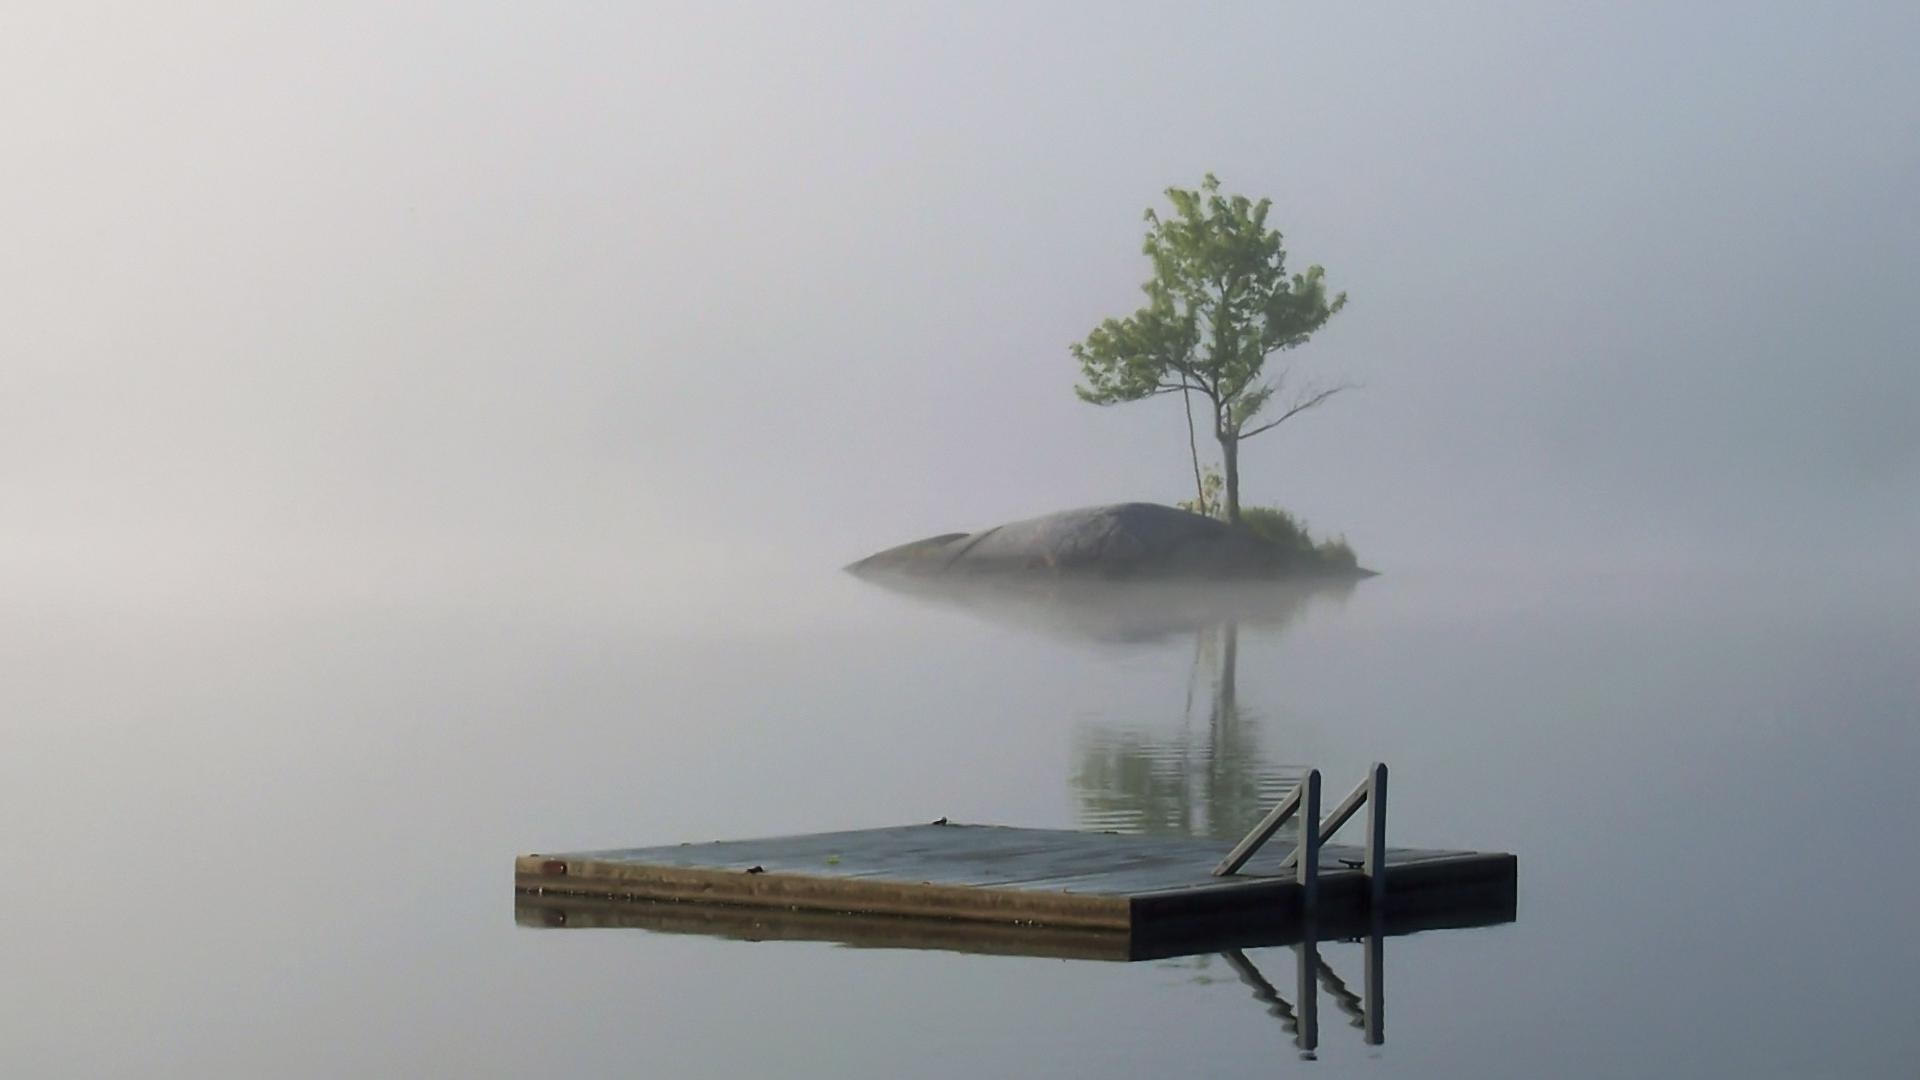 Lonely island, a tree,a raft, fog,water